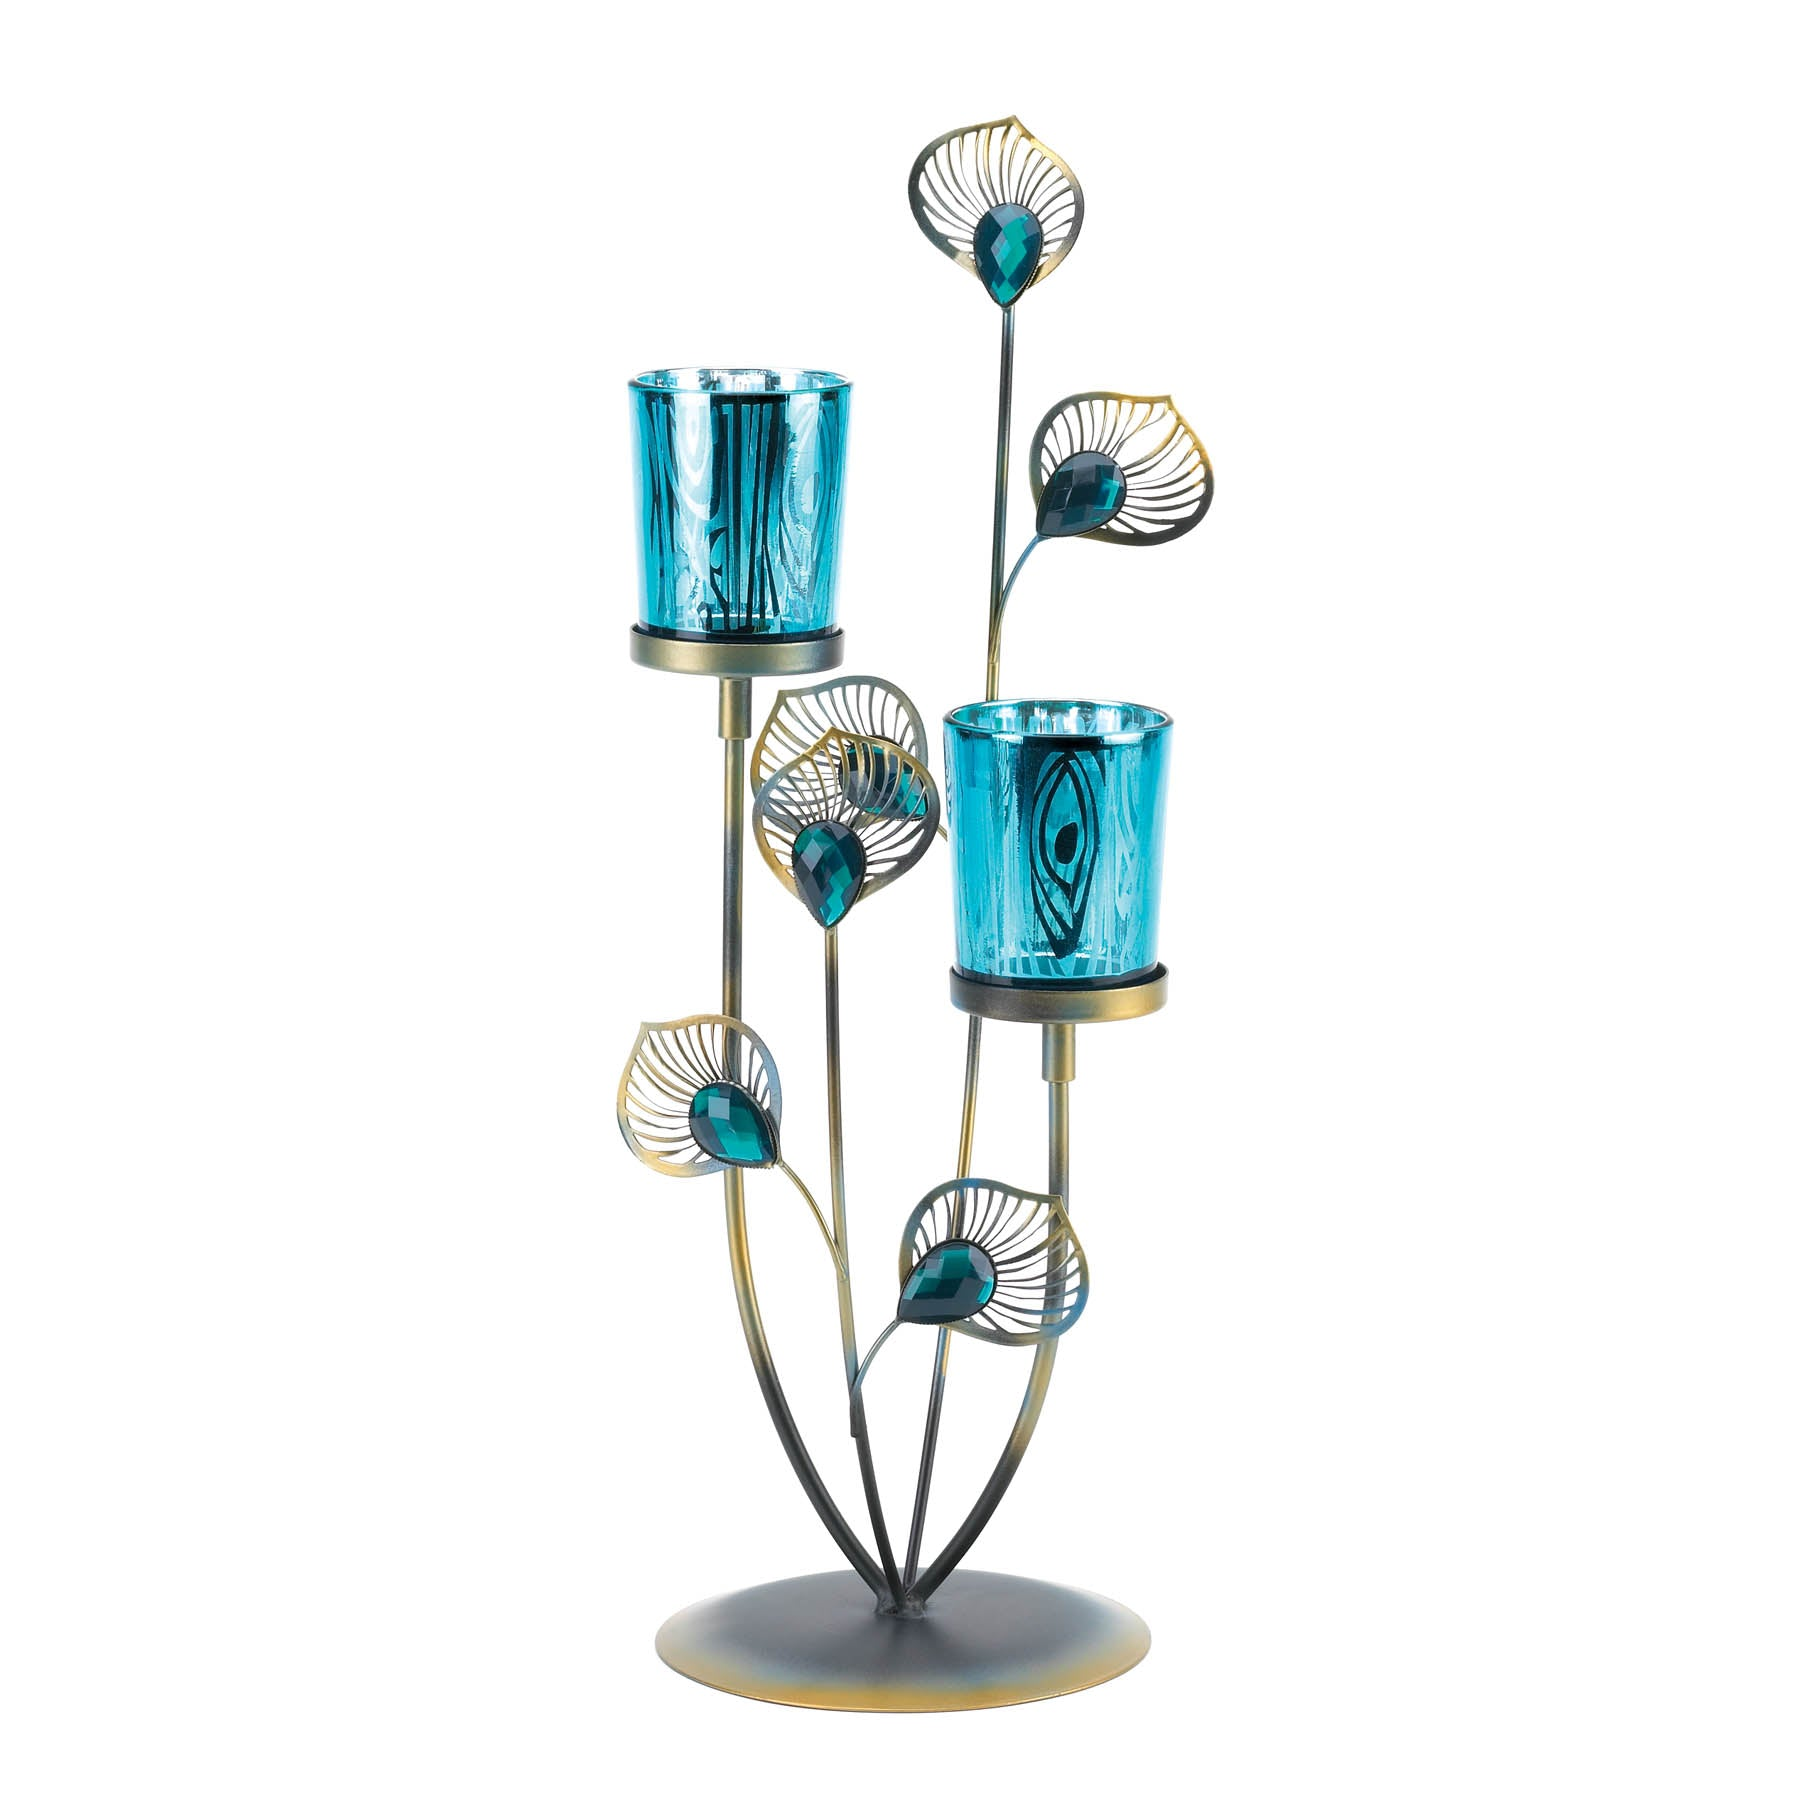 Gallery of Light Peacock Plume Candleholder - 10015949